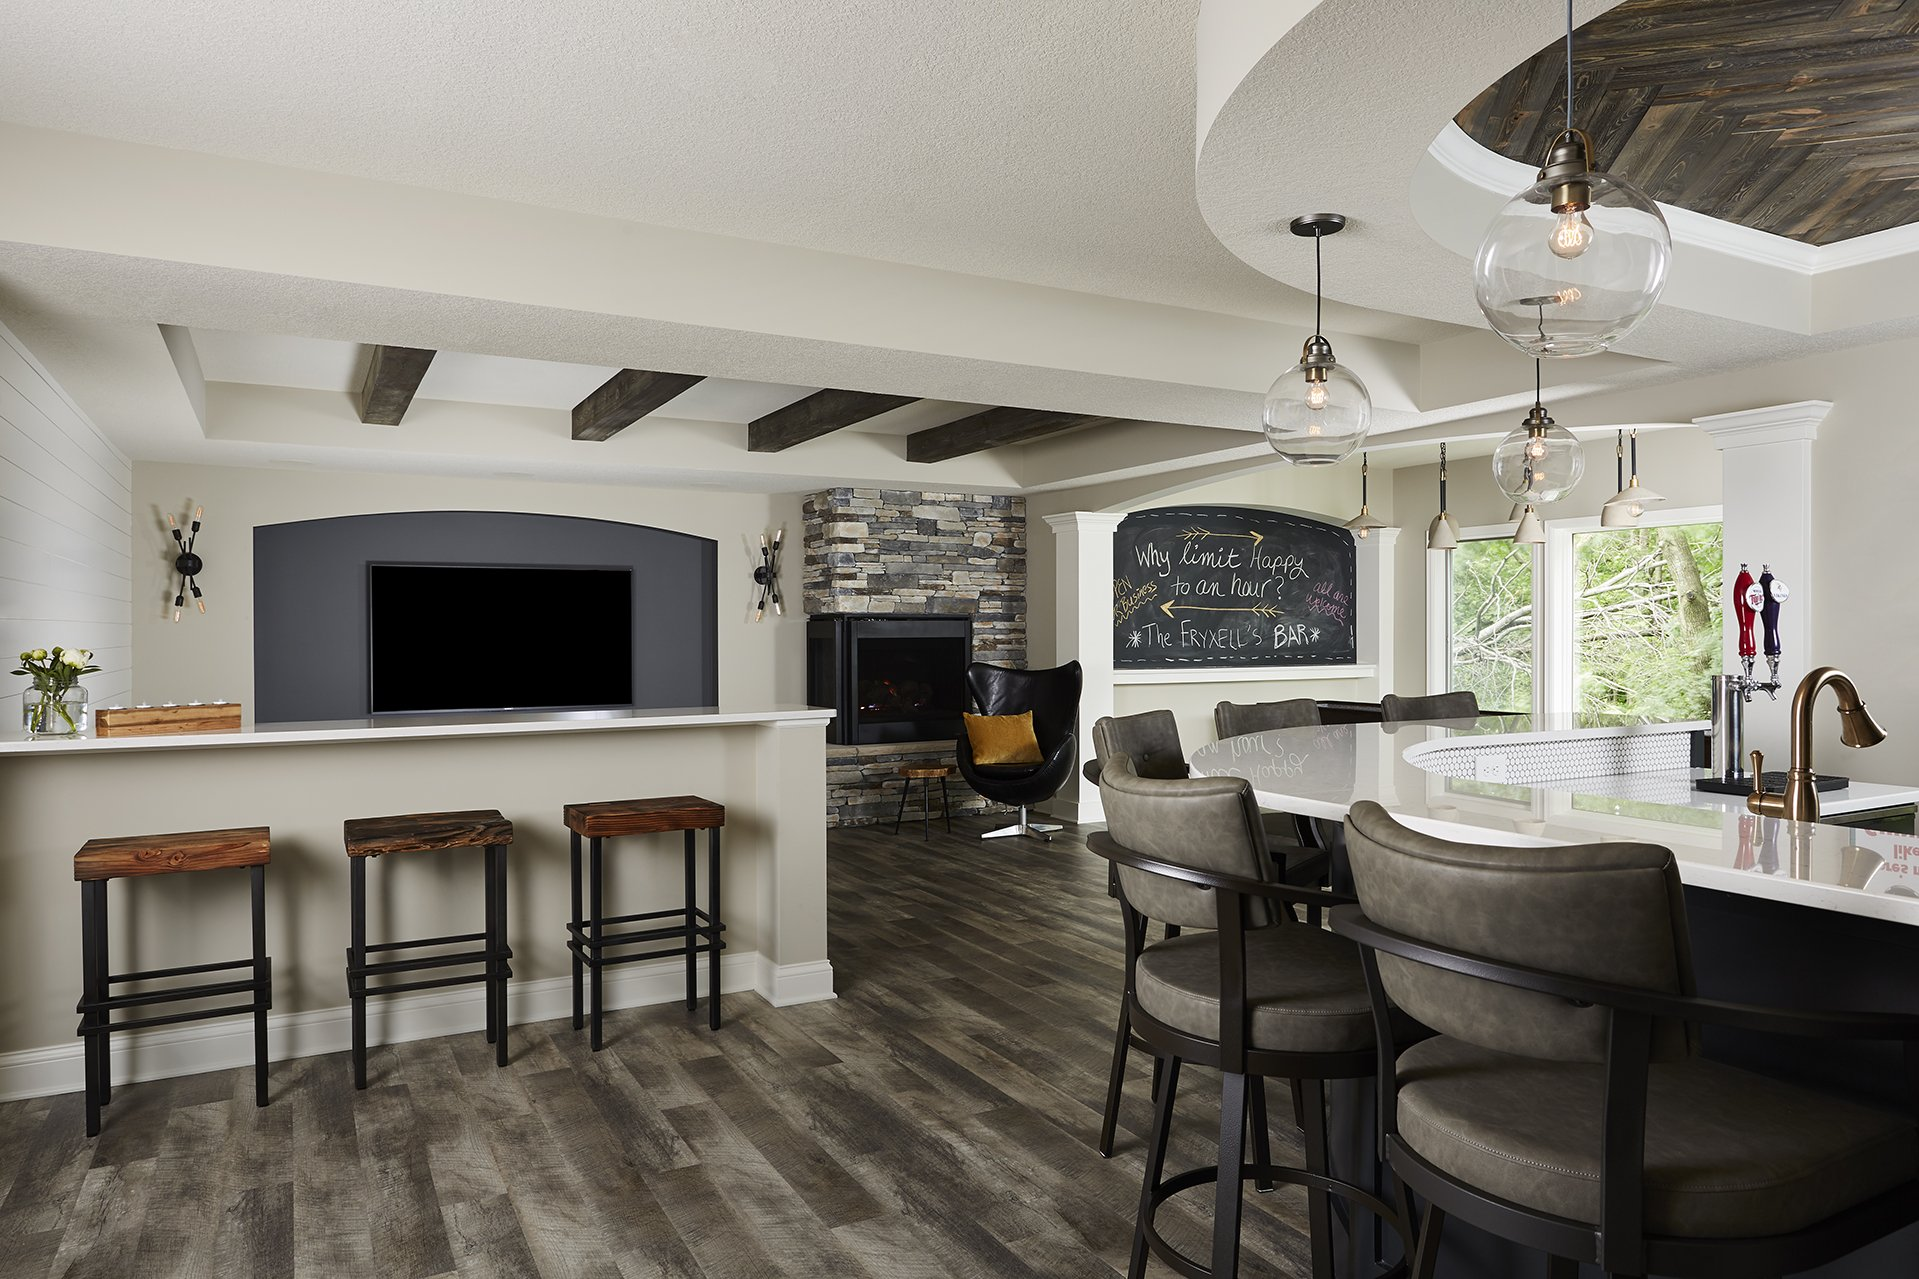 Dropped soffits above the basement bar and throughout the room provide architectural contrast and interest while simultaneously hiding dropped ductwork